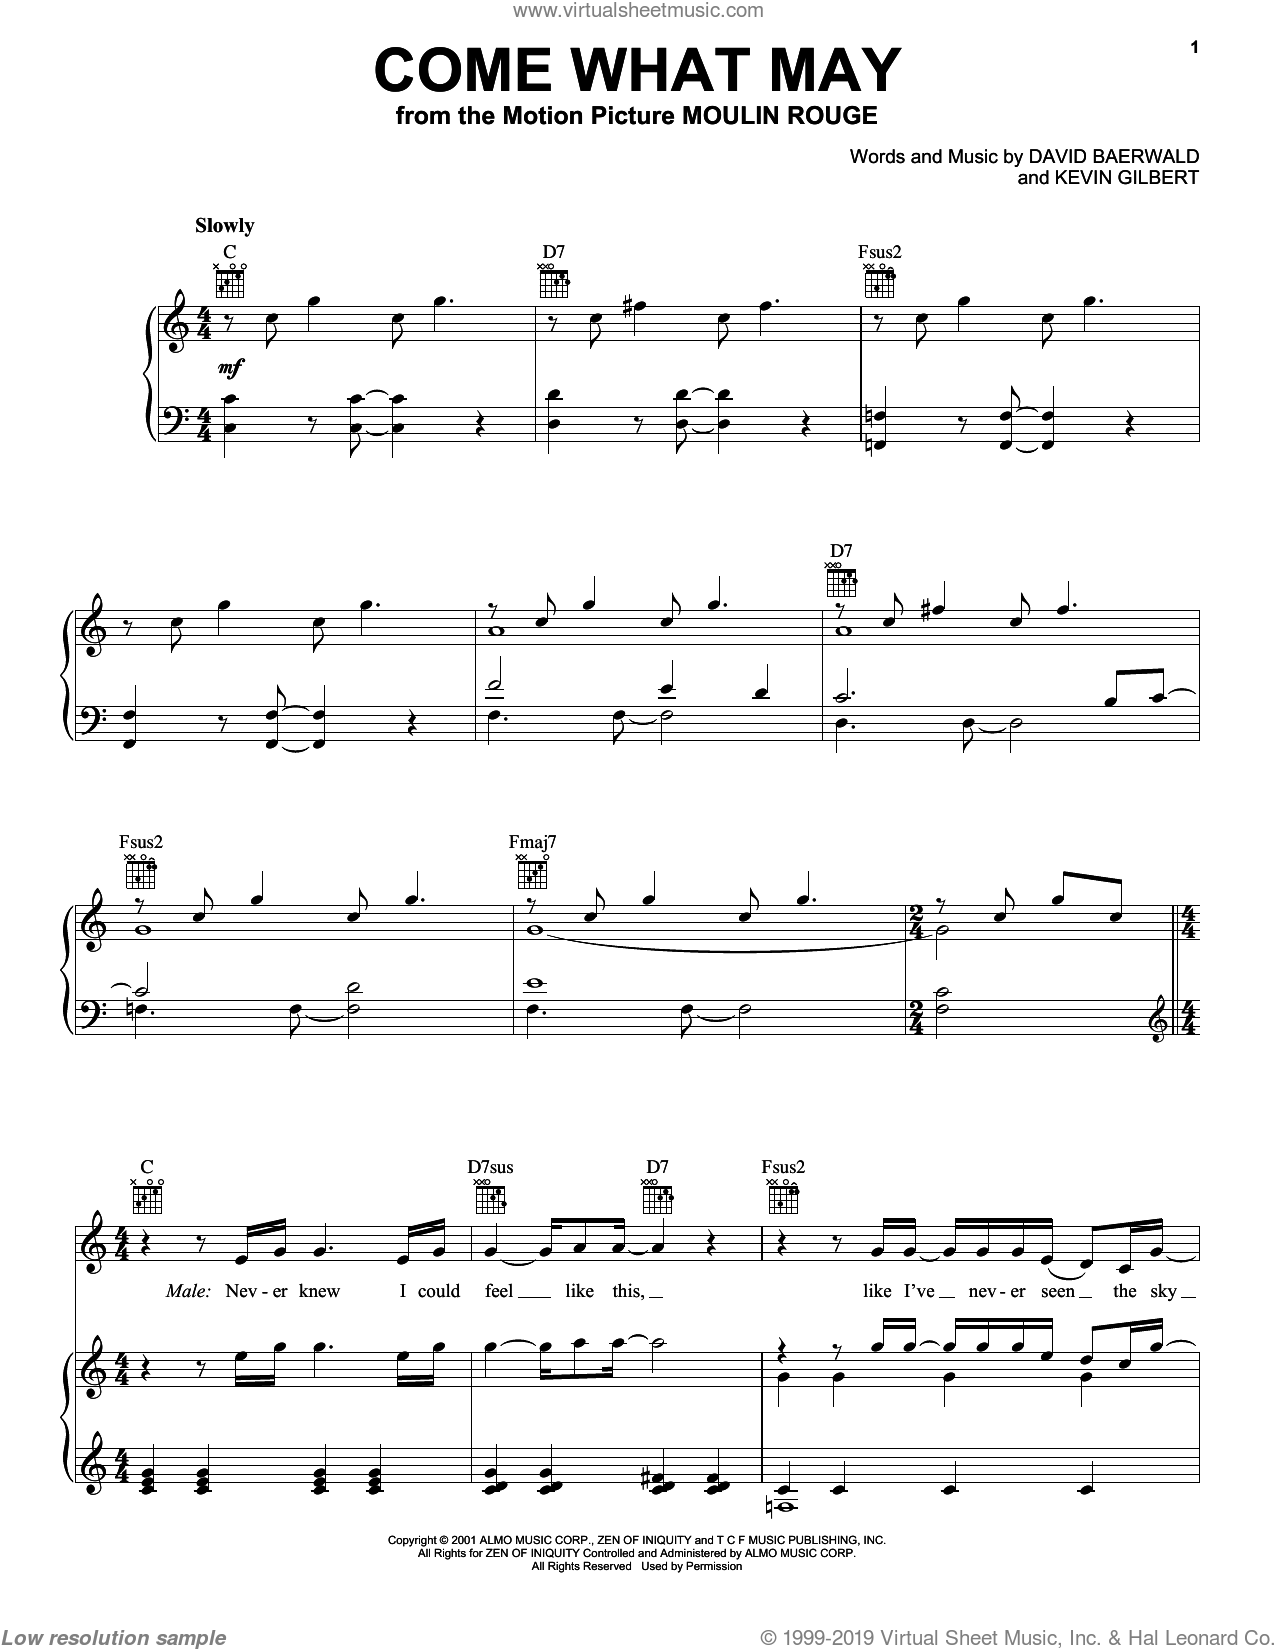 Come What May sheet music for voice, piano or guitar by David Baerwald. Score Image Preview.